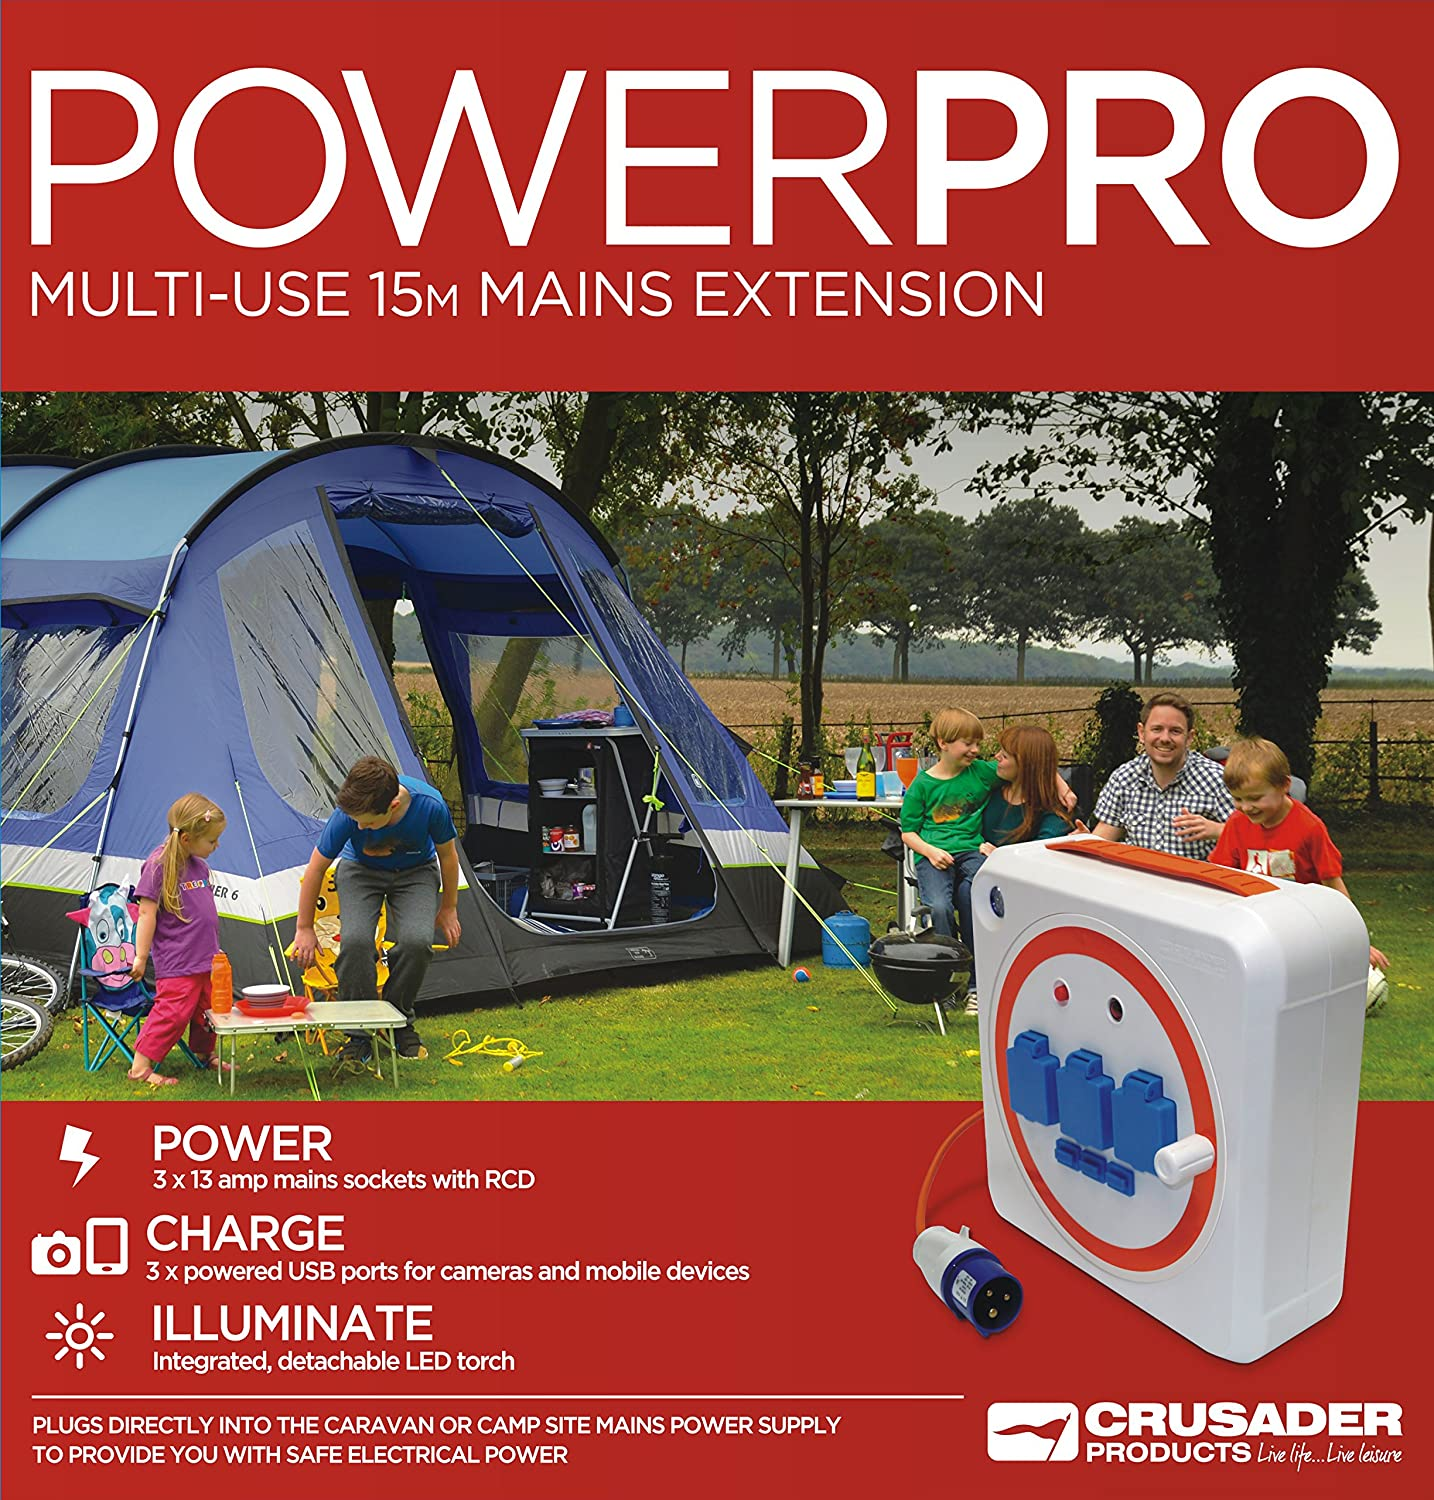 Crusader Powerpro Multi Use 15m Extension Mobile Mains Reel Hook Up Caravan Rcd Wiring Diagram With For Camping And The Garden Car Motorbike